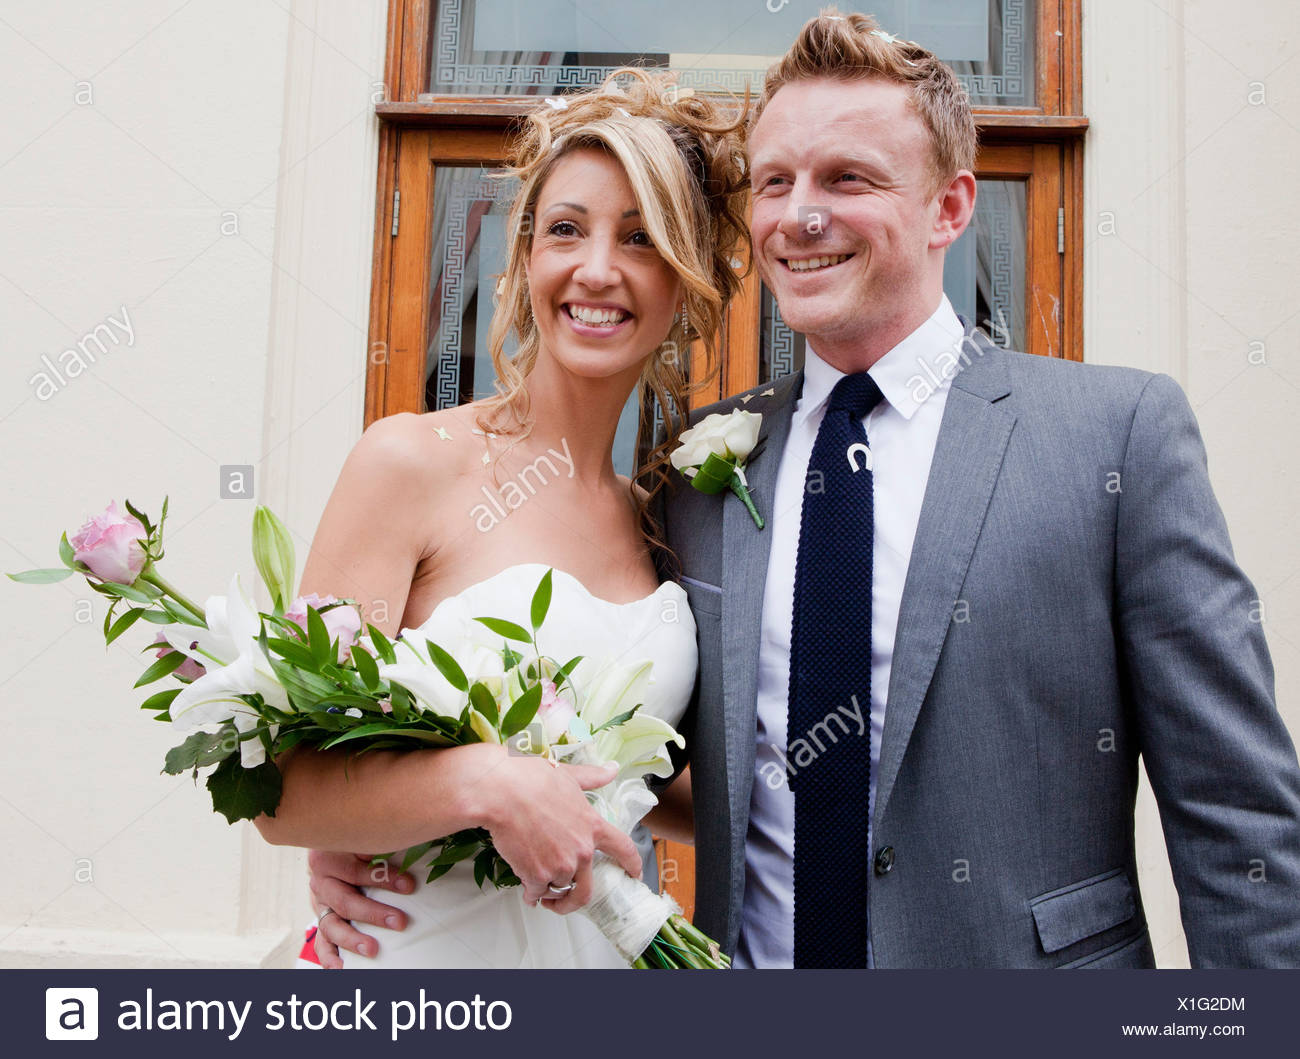 Bride and groom smiling at wedding ceremony - Stock Image